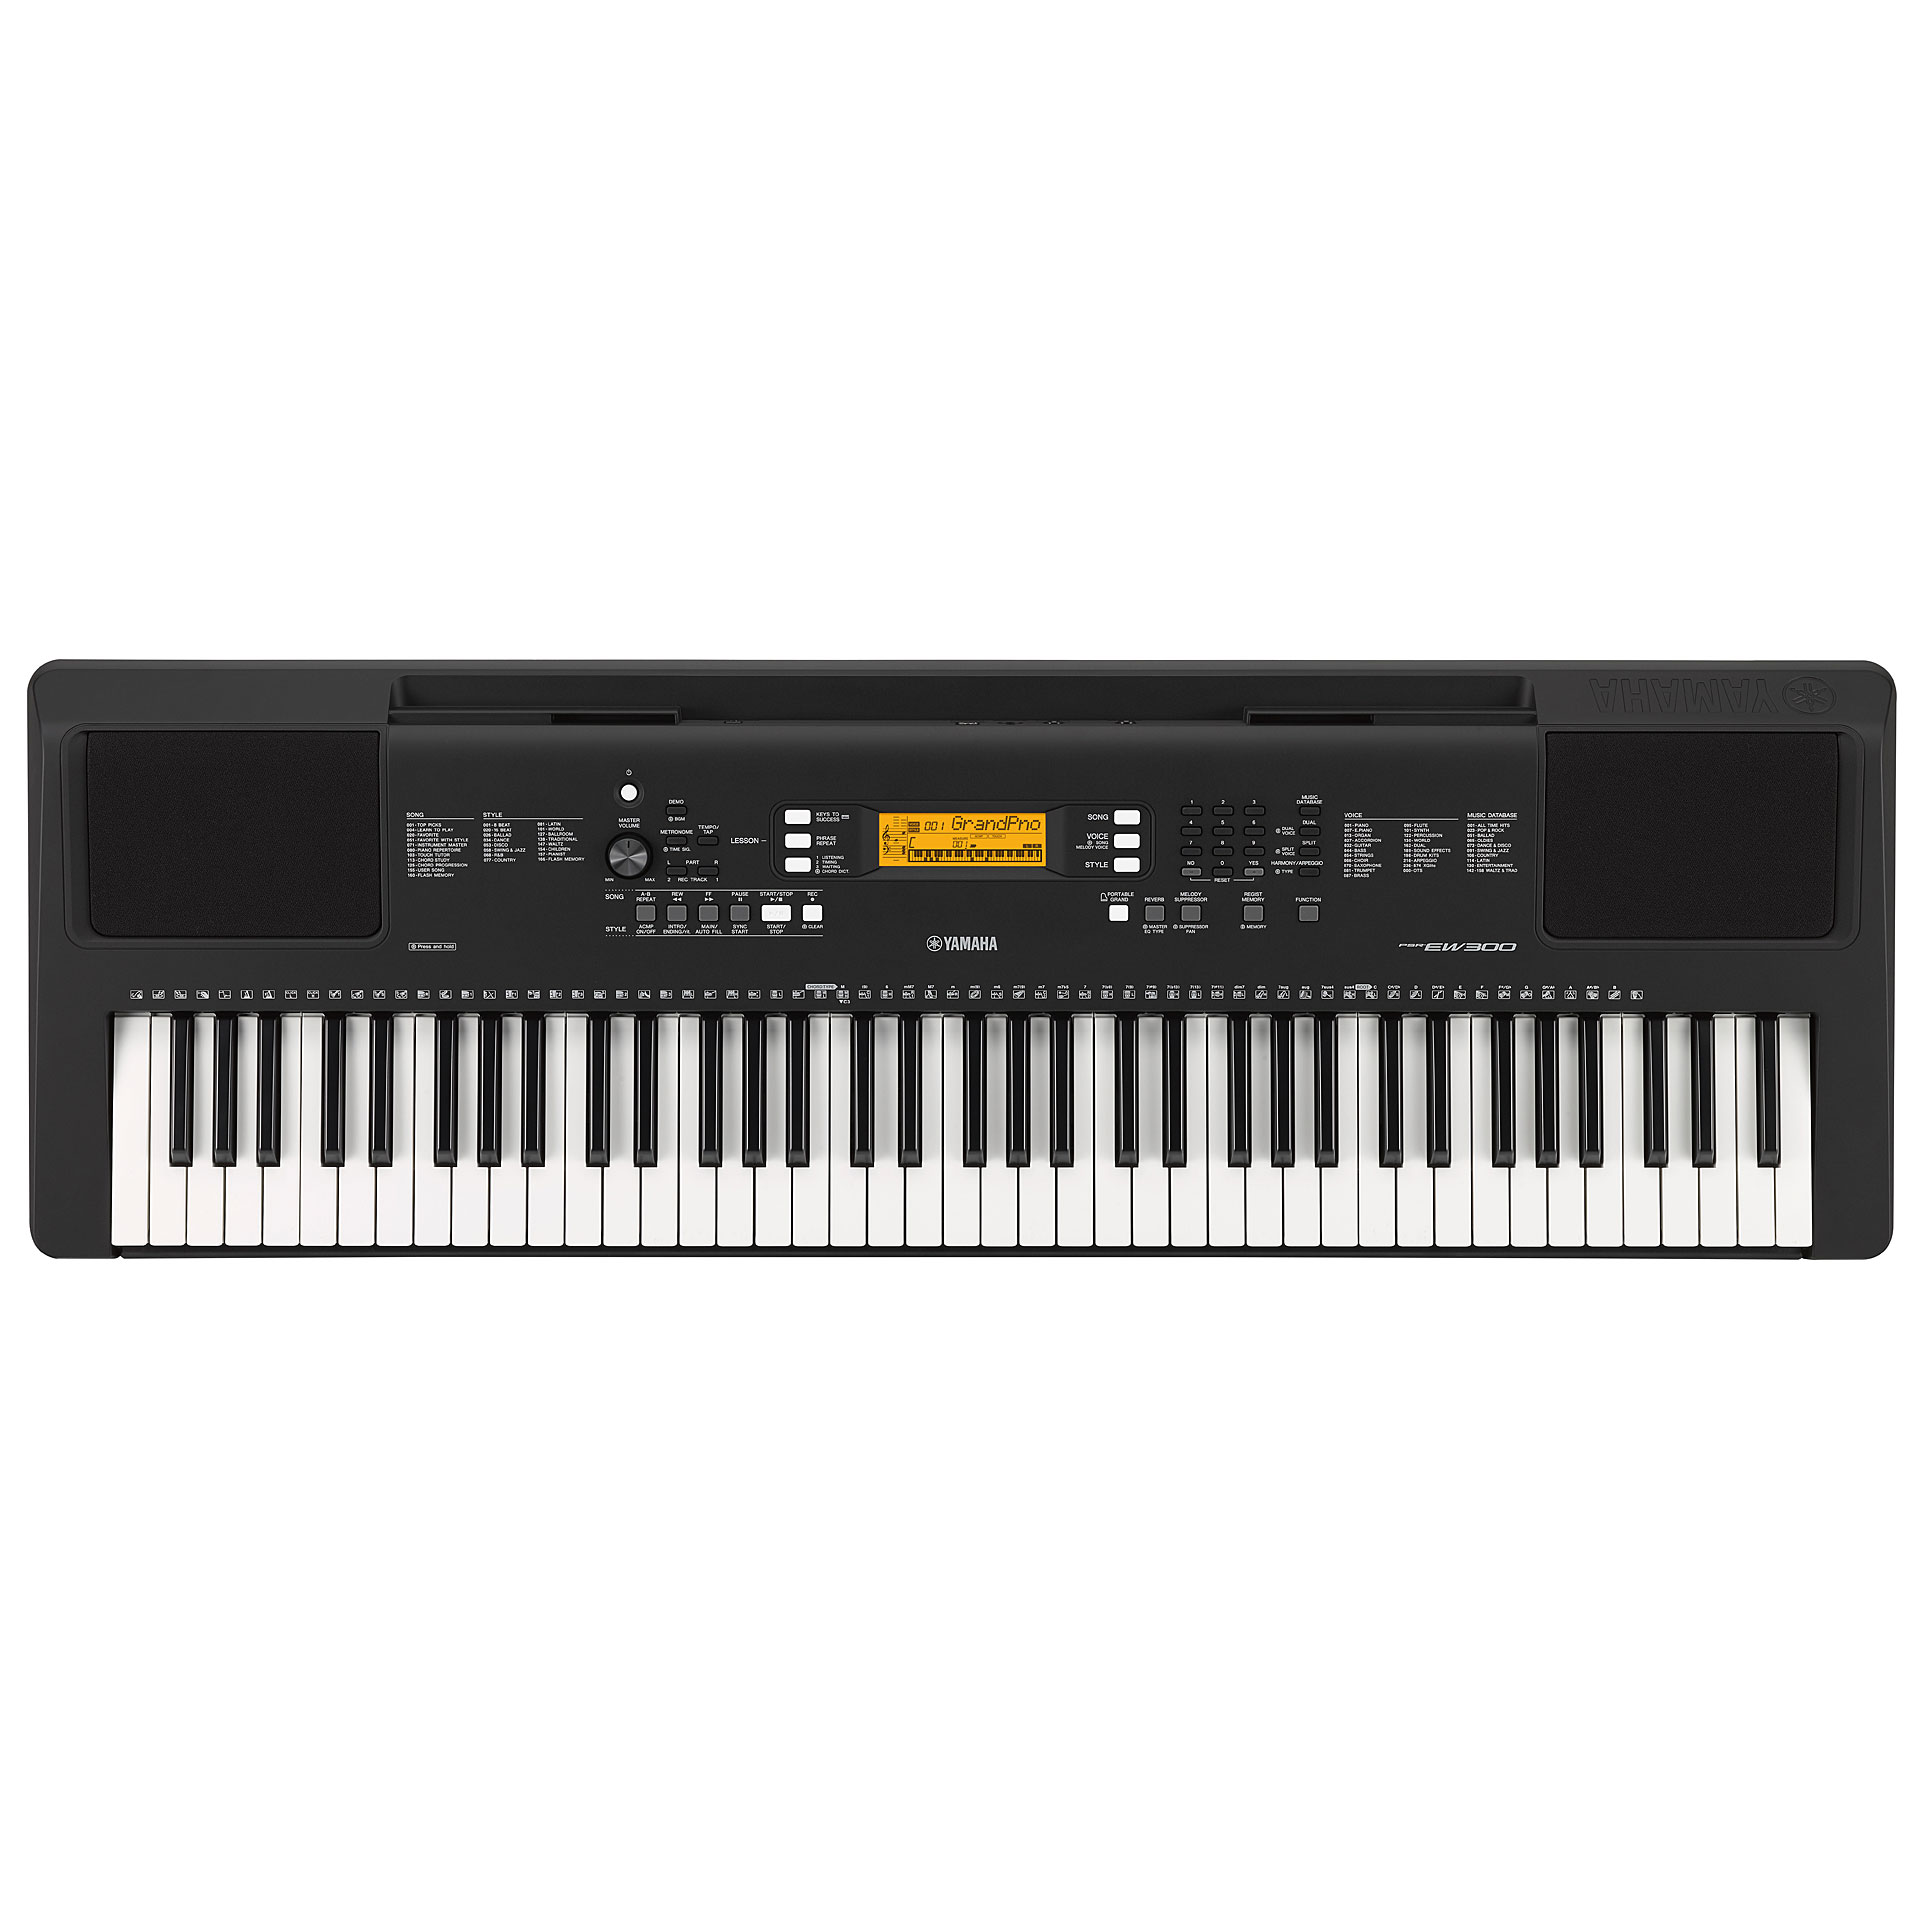 Yamaha psr ew300 keyboard for Yamaha psr ew